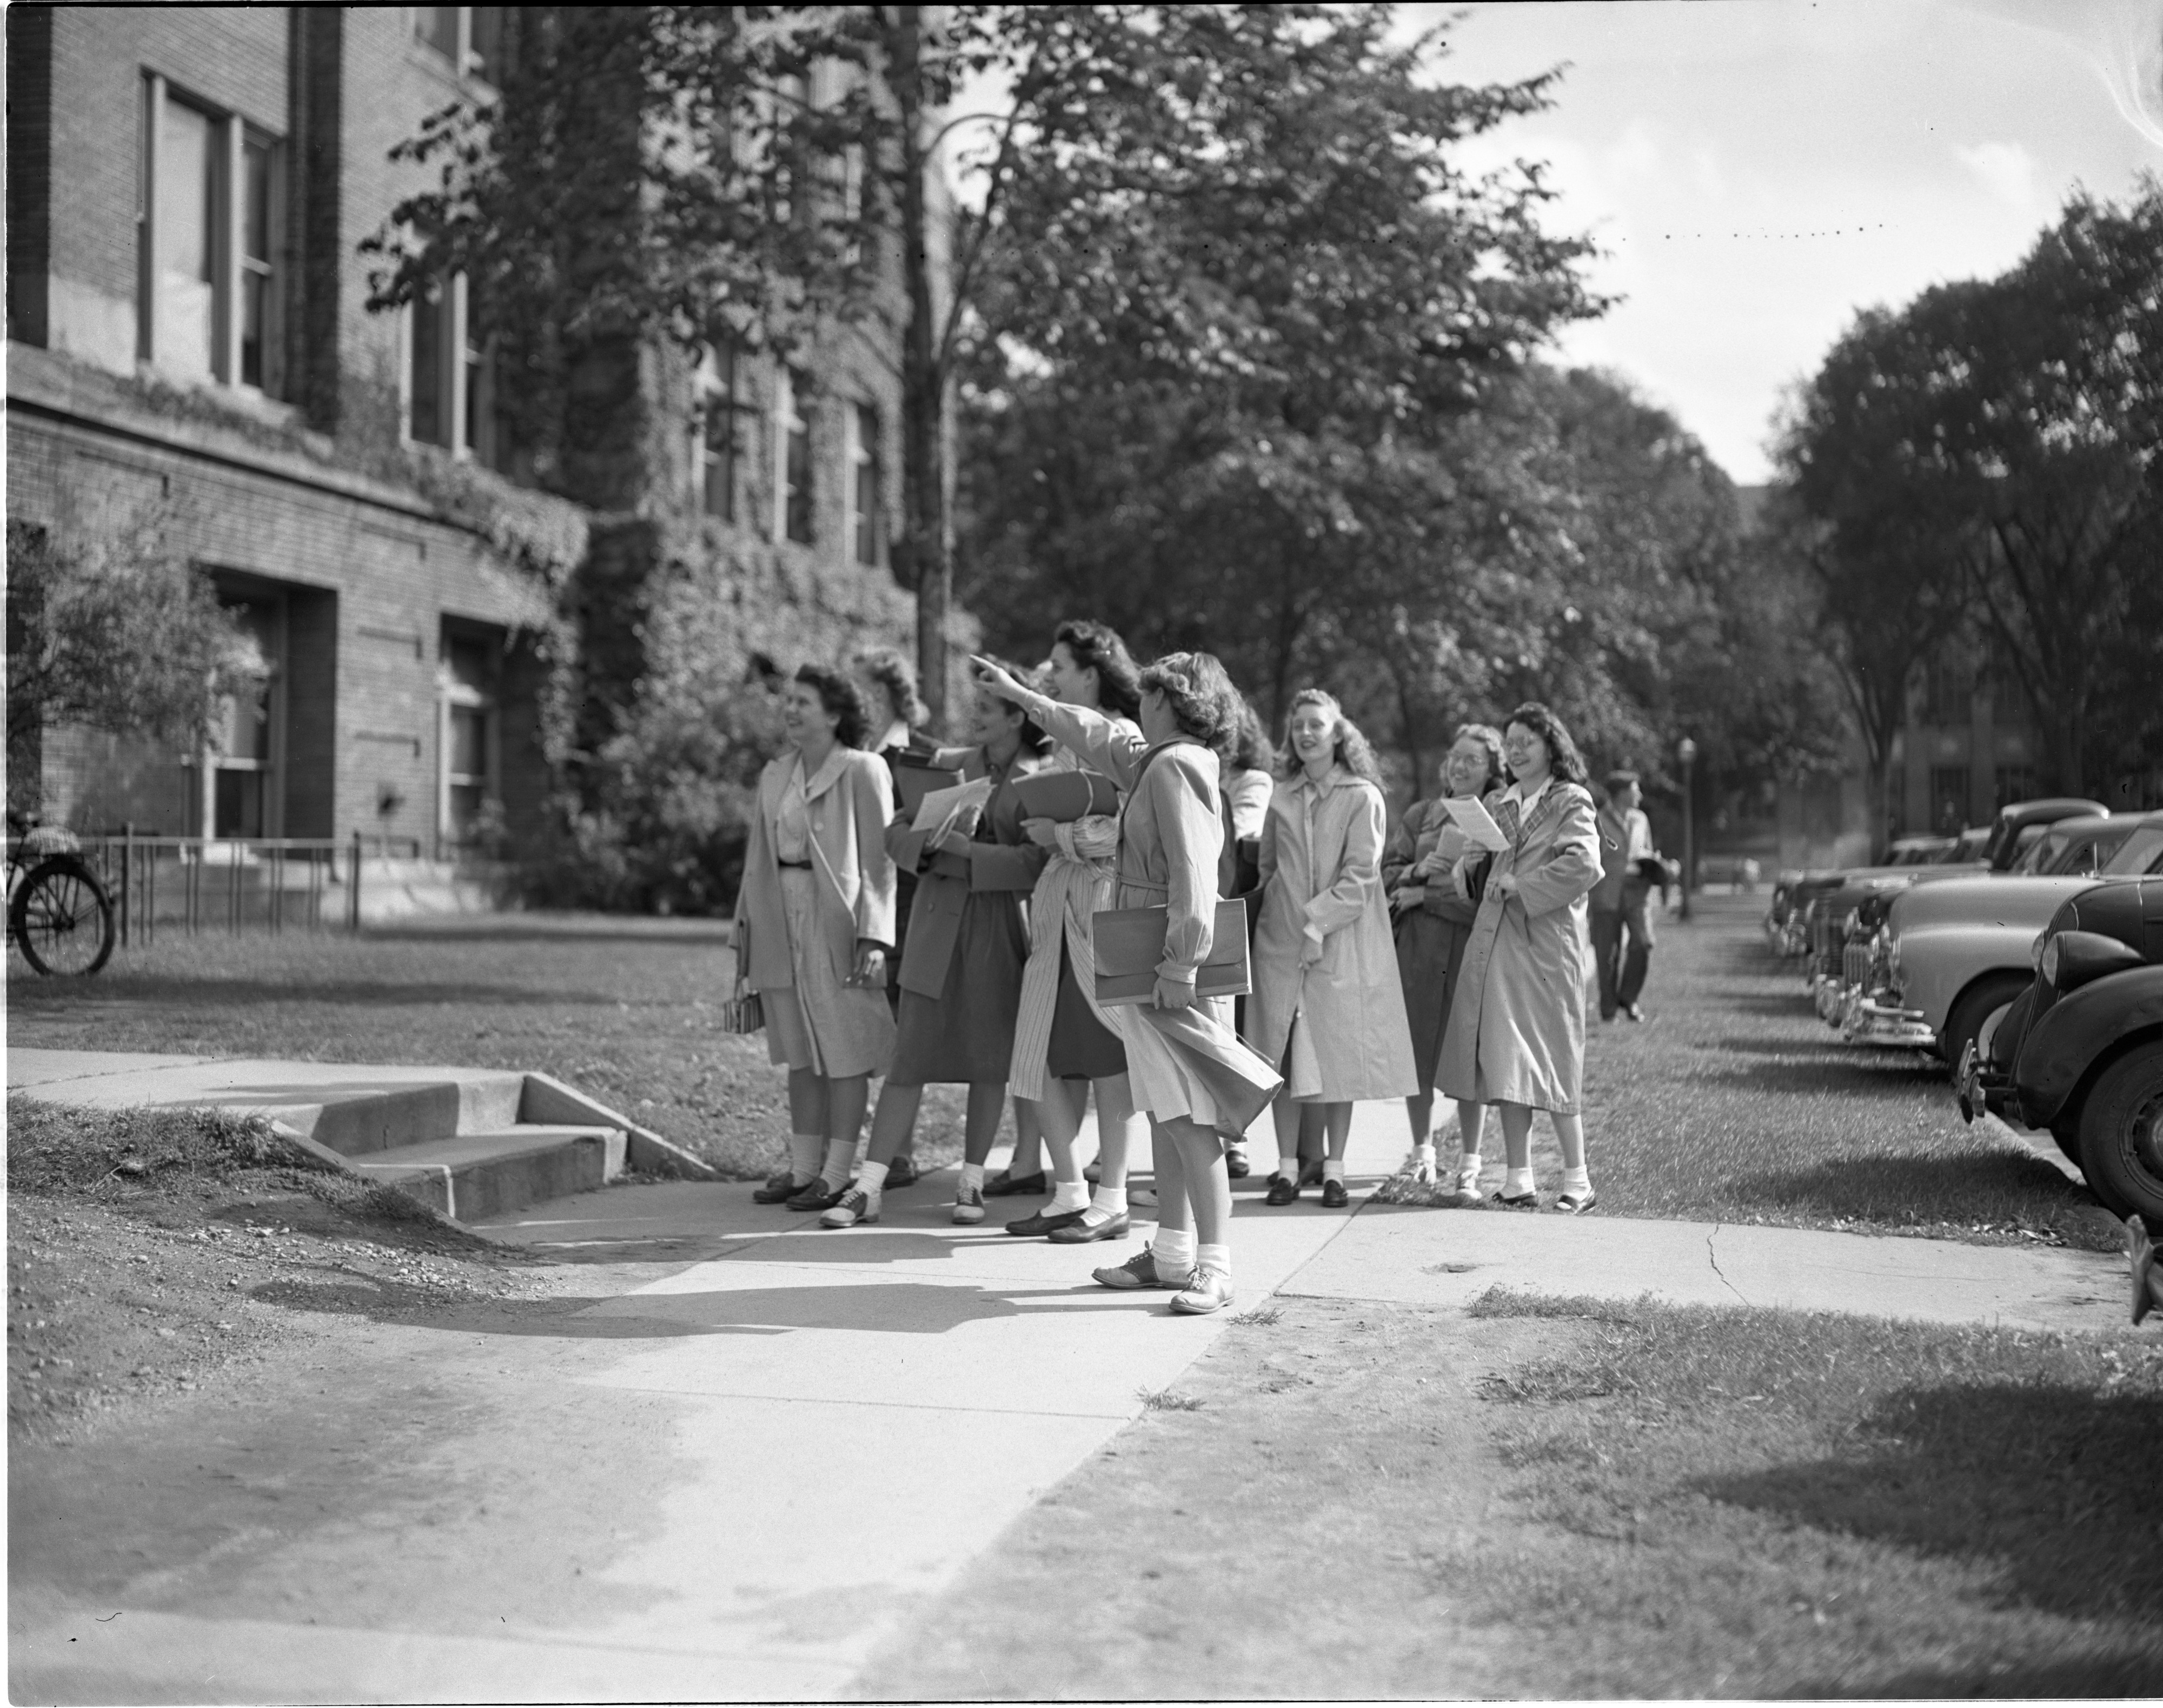 New University Of Michigan Students Tour The Campus During Orientation, September 1947 image